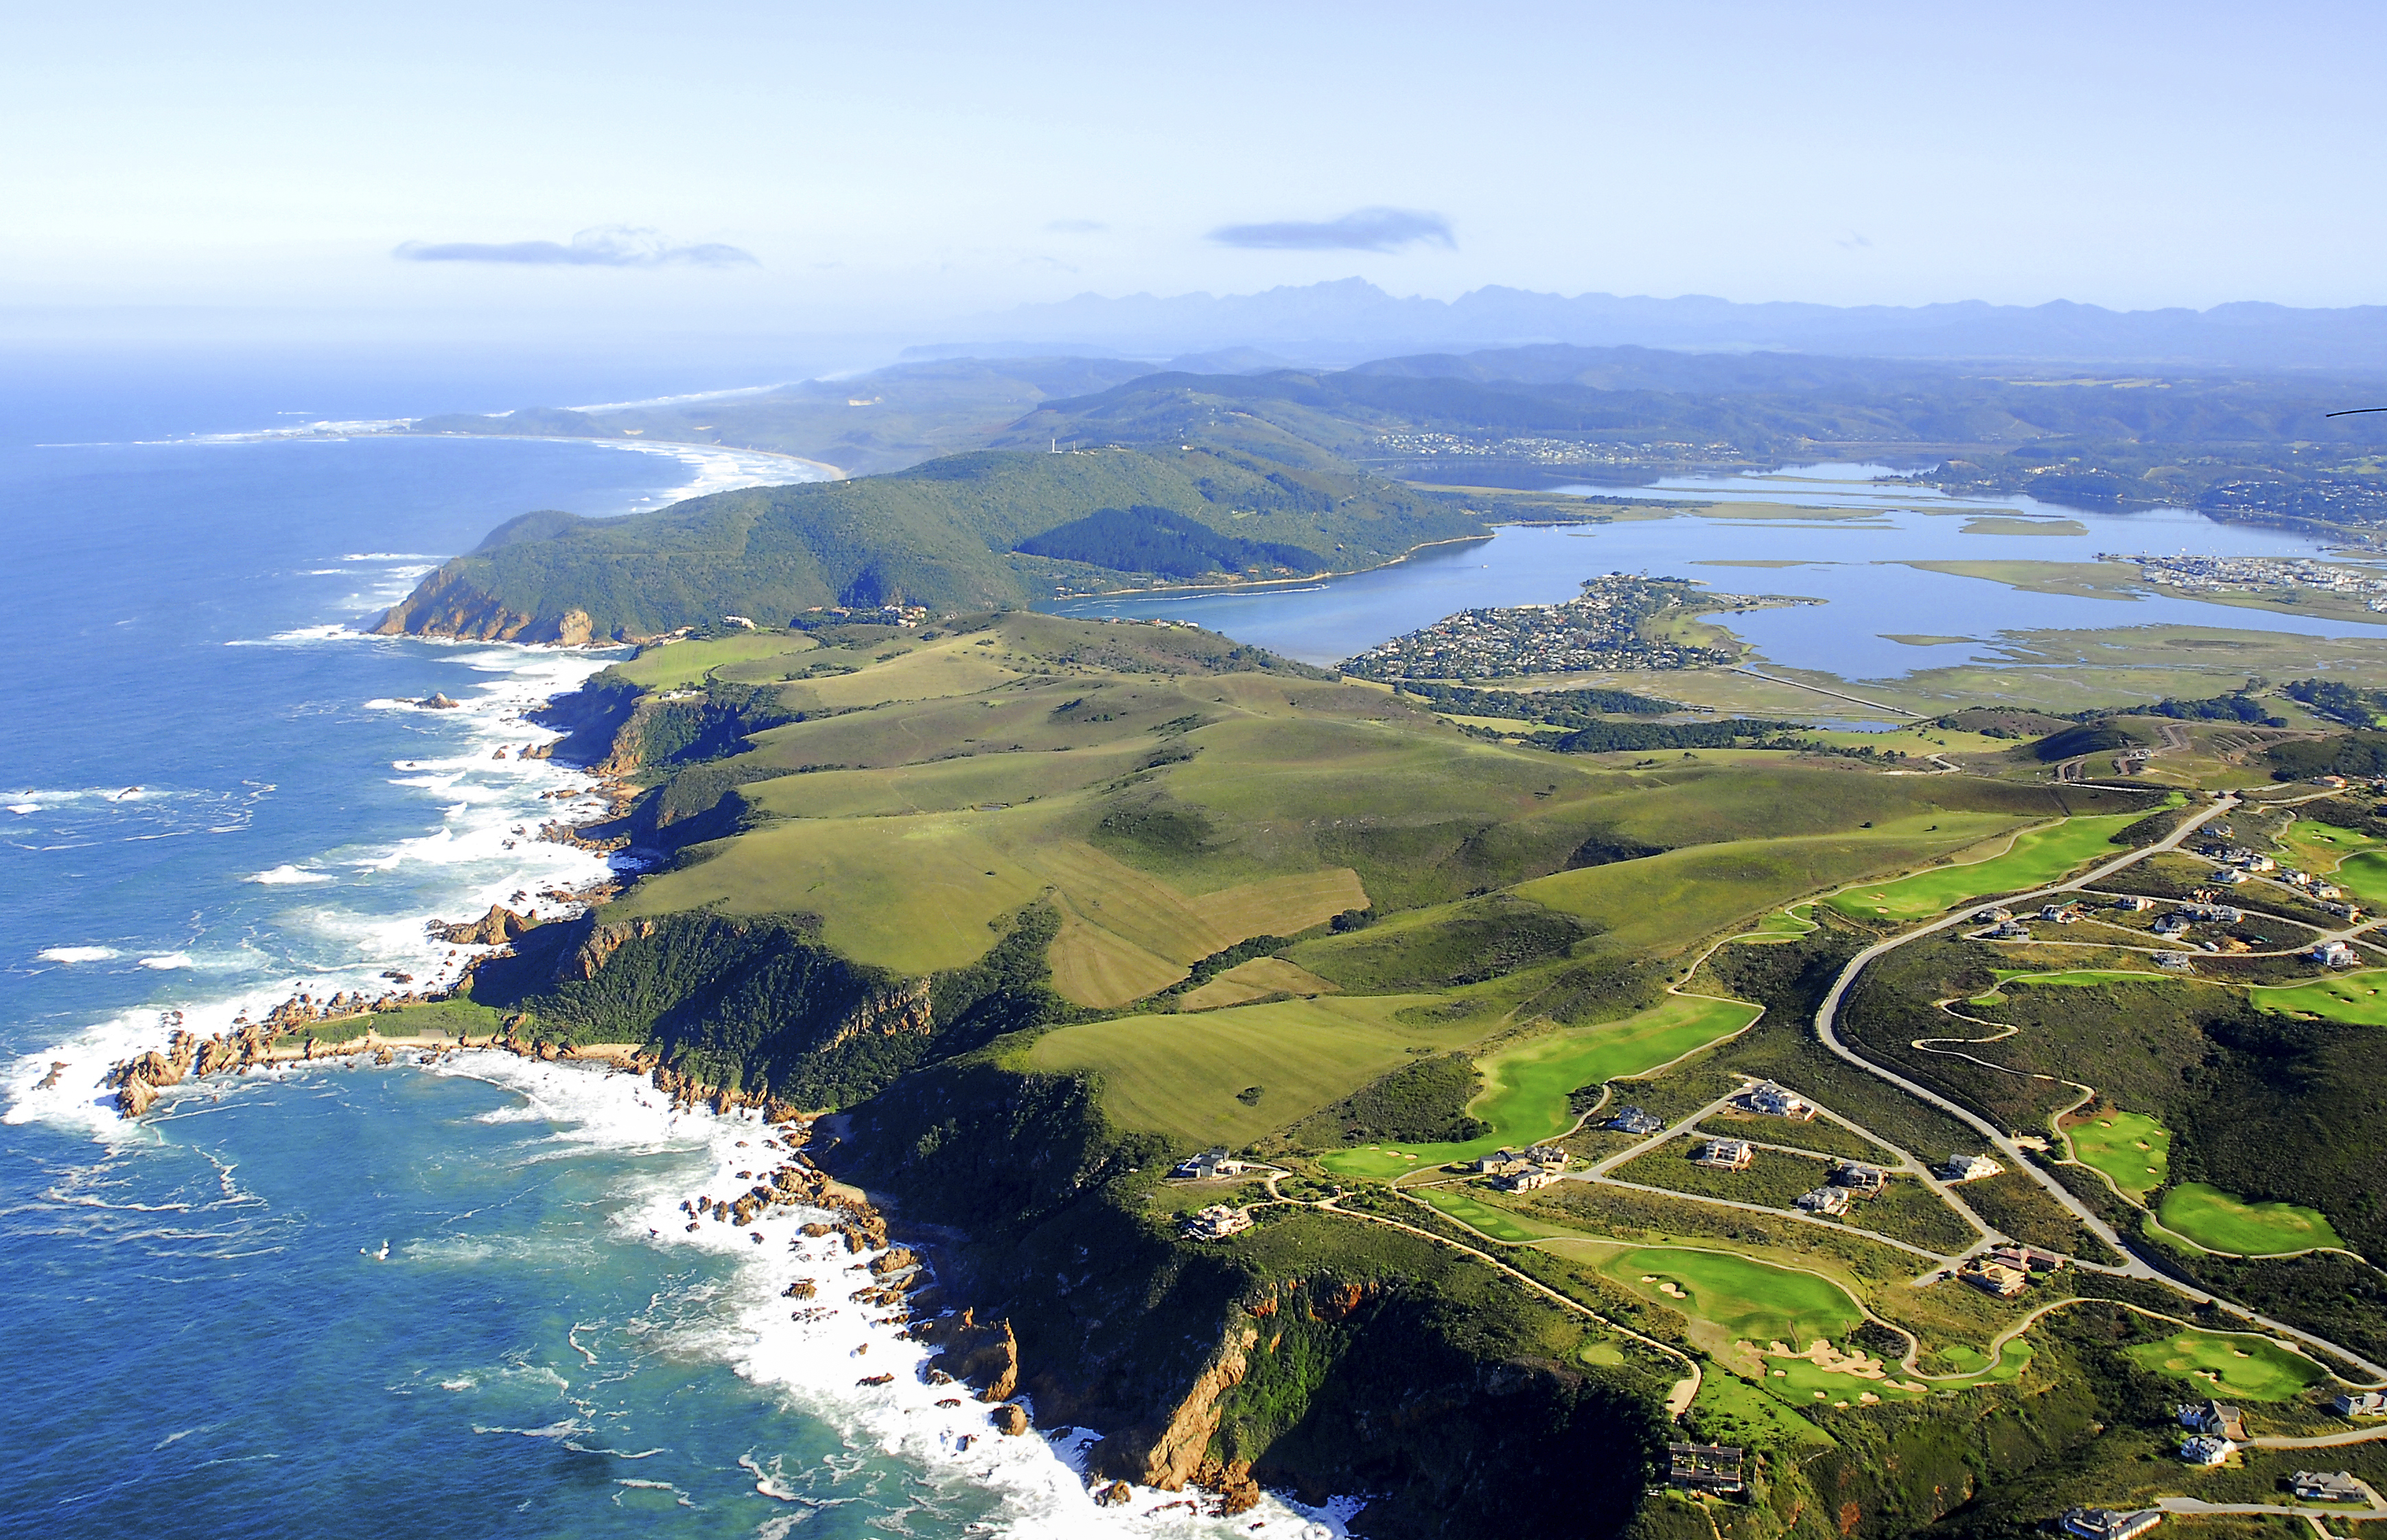 Knysna with Pezula in the foreground.